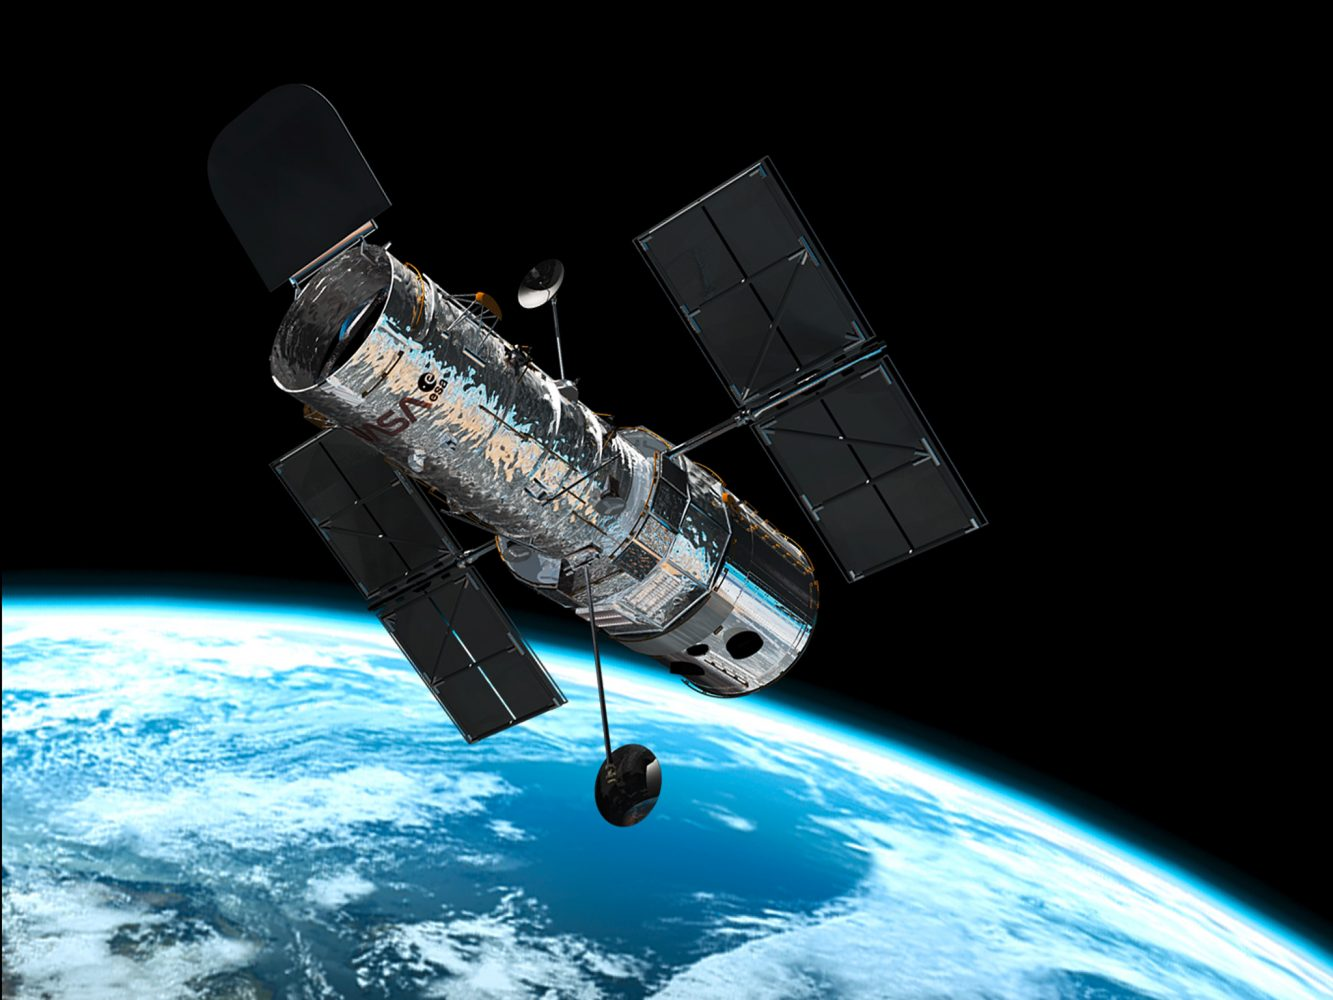 The+Hubble+Telescope-+Our+Eyes+Into+the+Universe